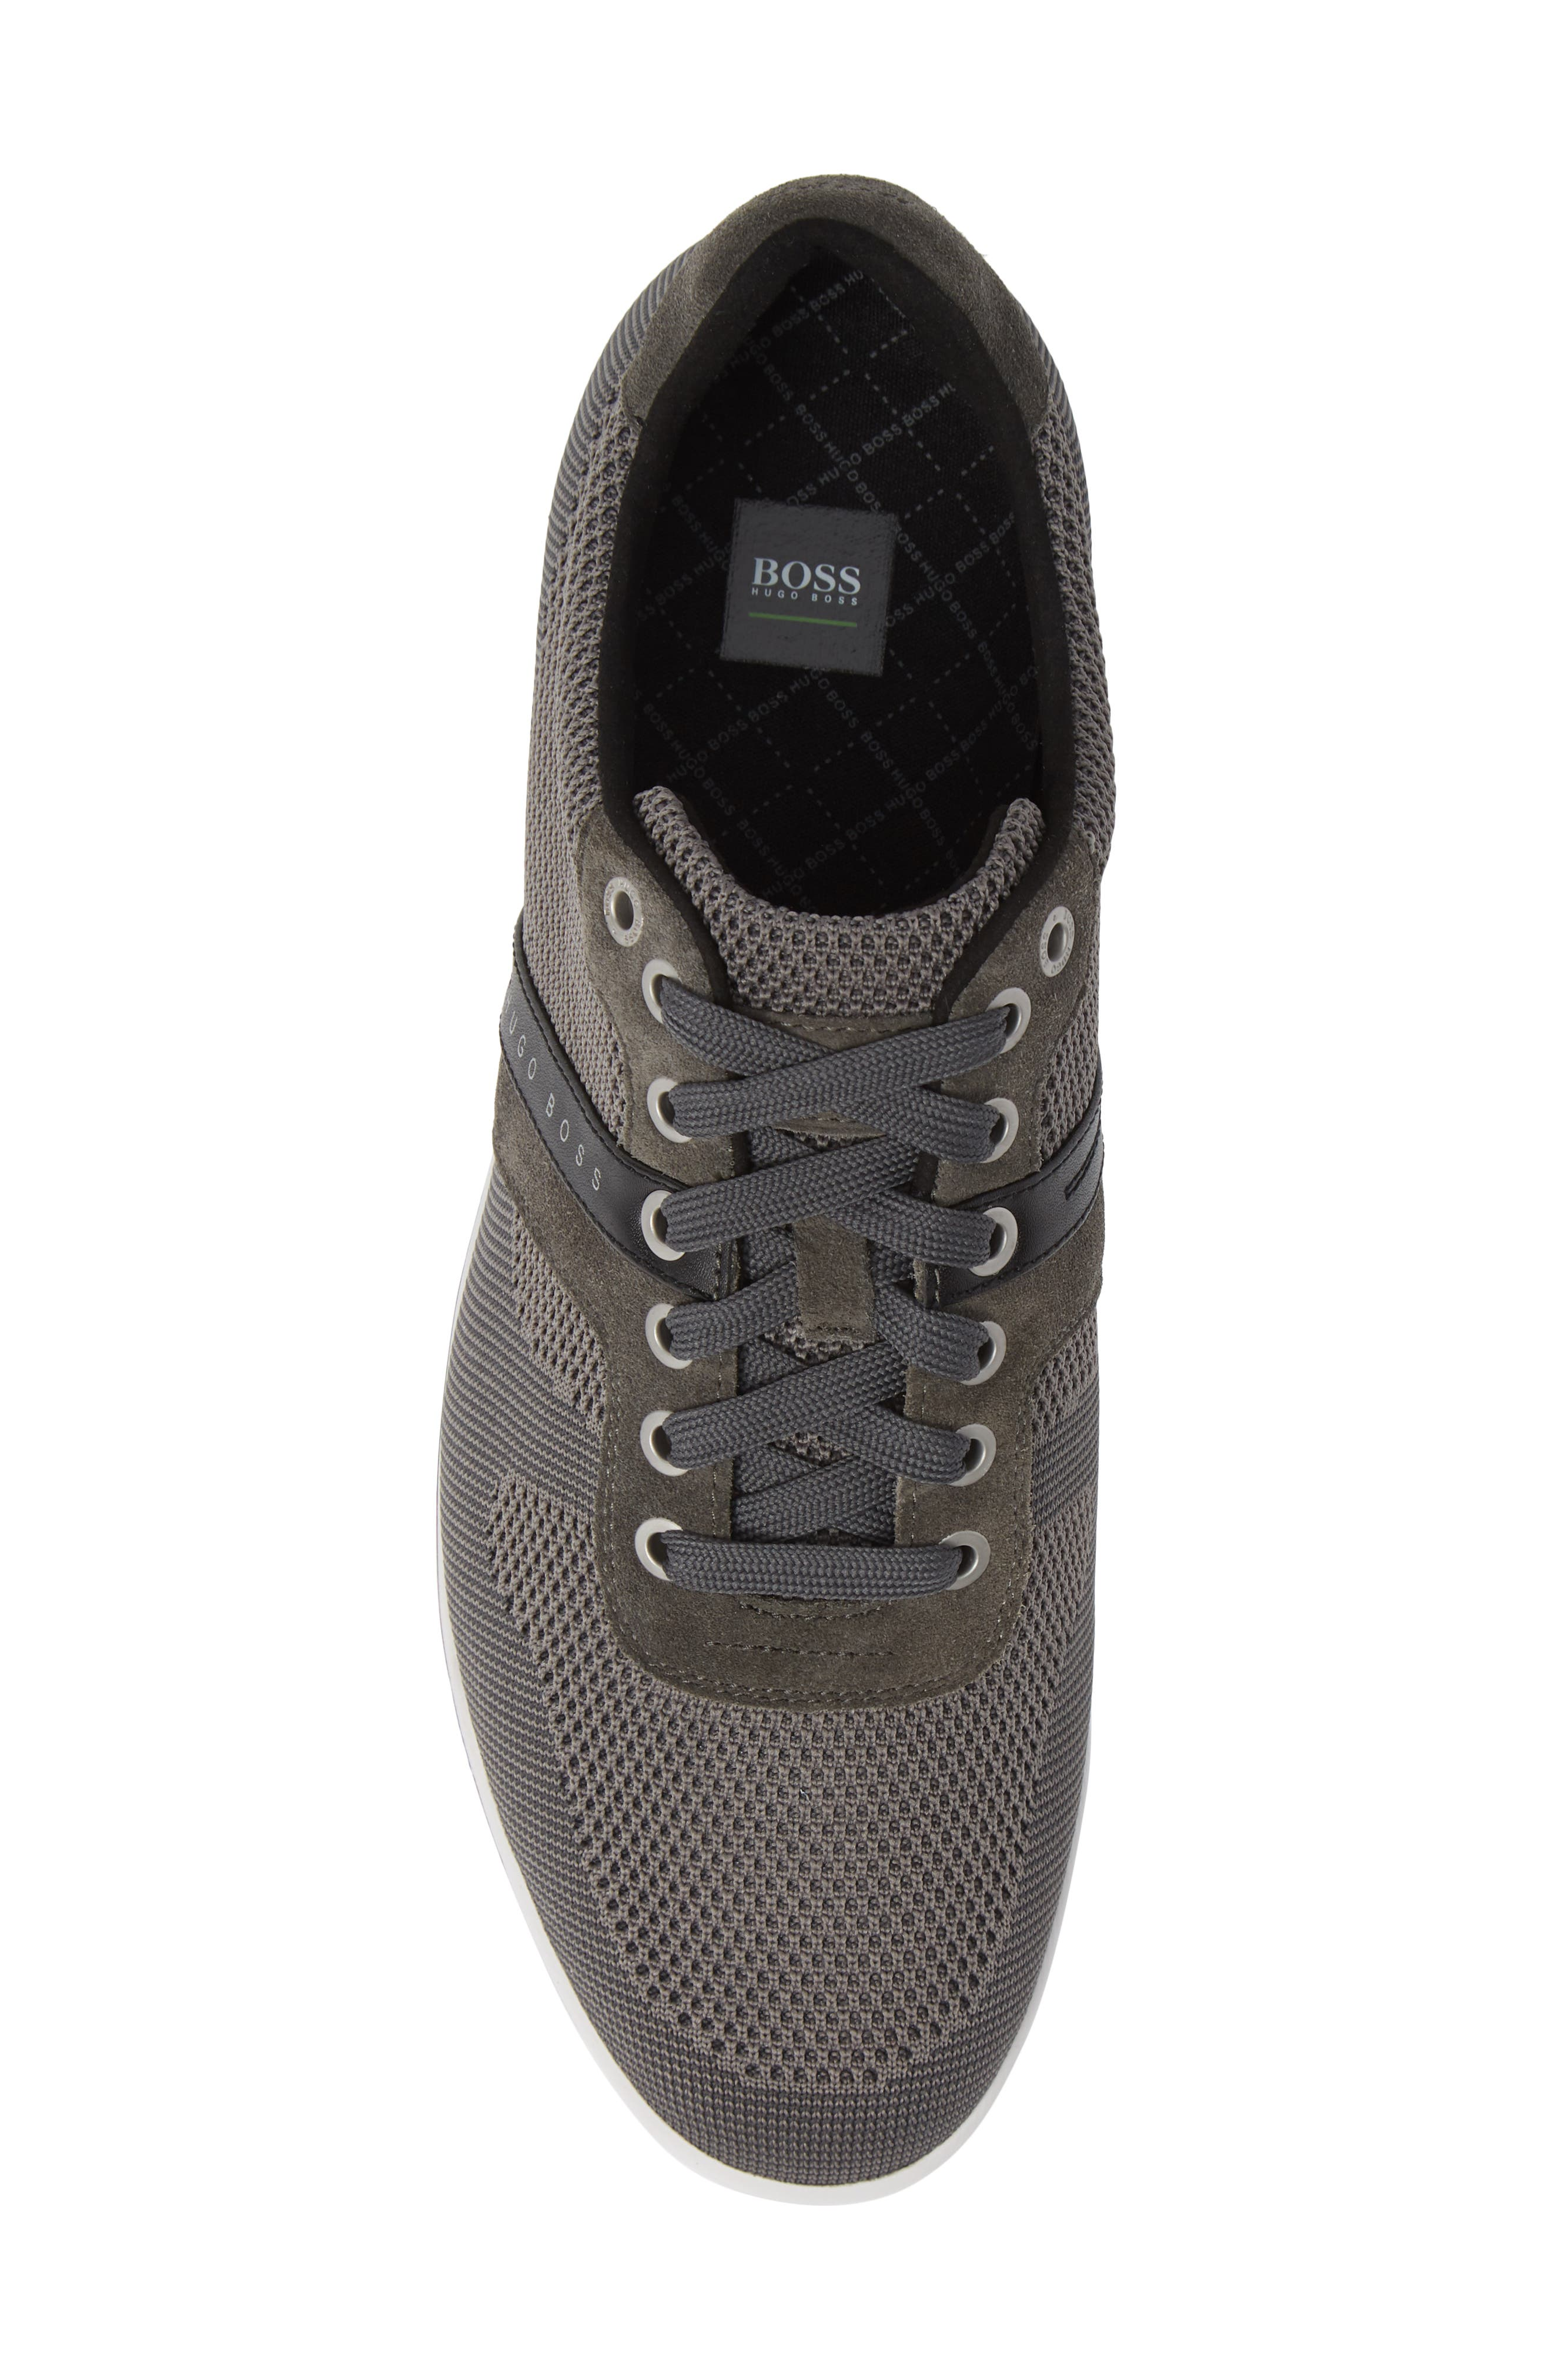 Hugo Boss Arkansas Lace-Up Sneaker,                             Alternate thumbnail 5, color,                             021